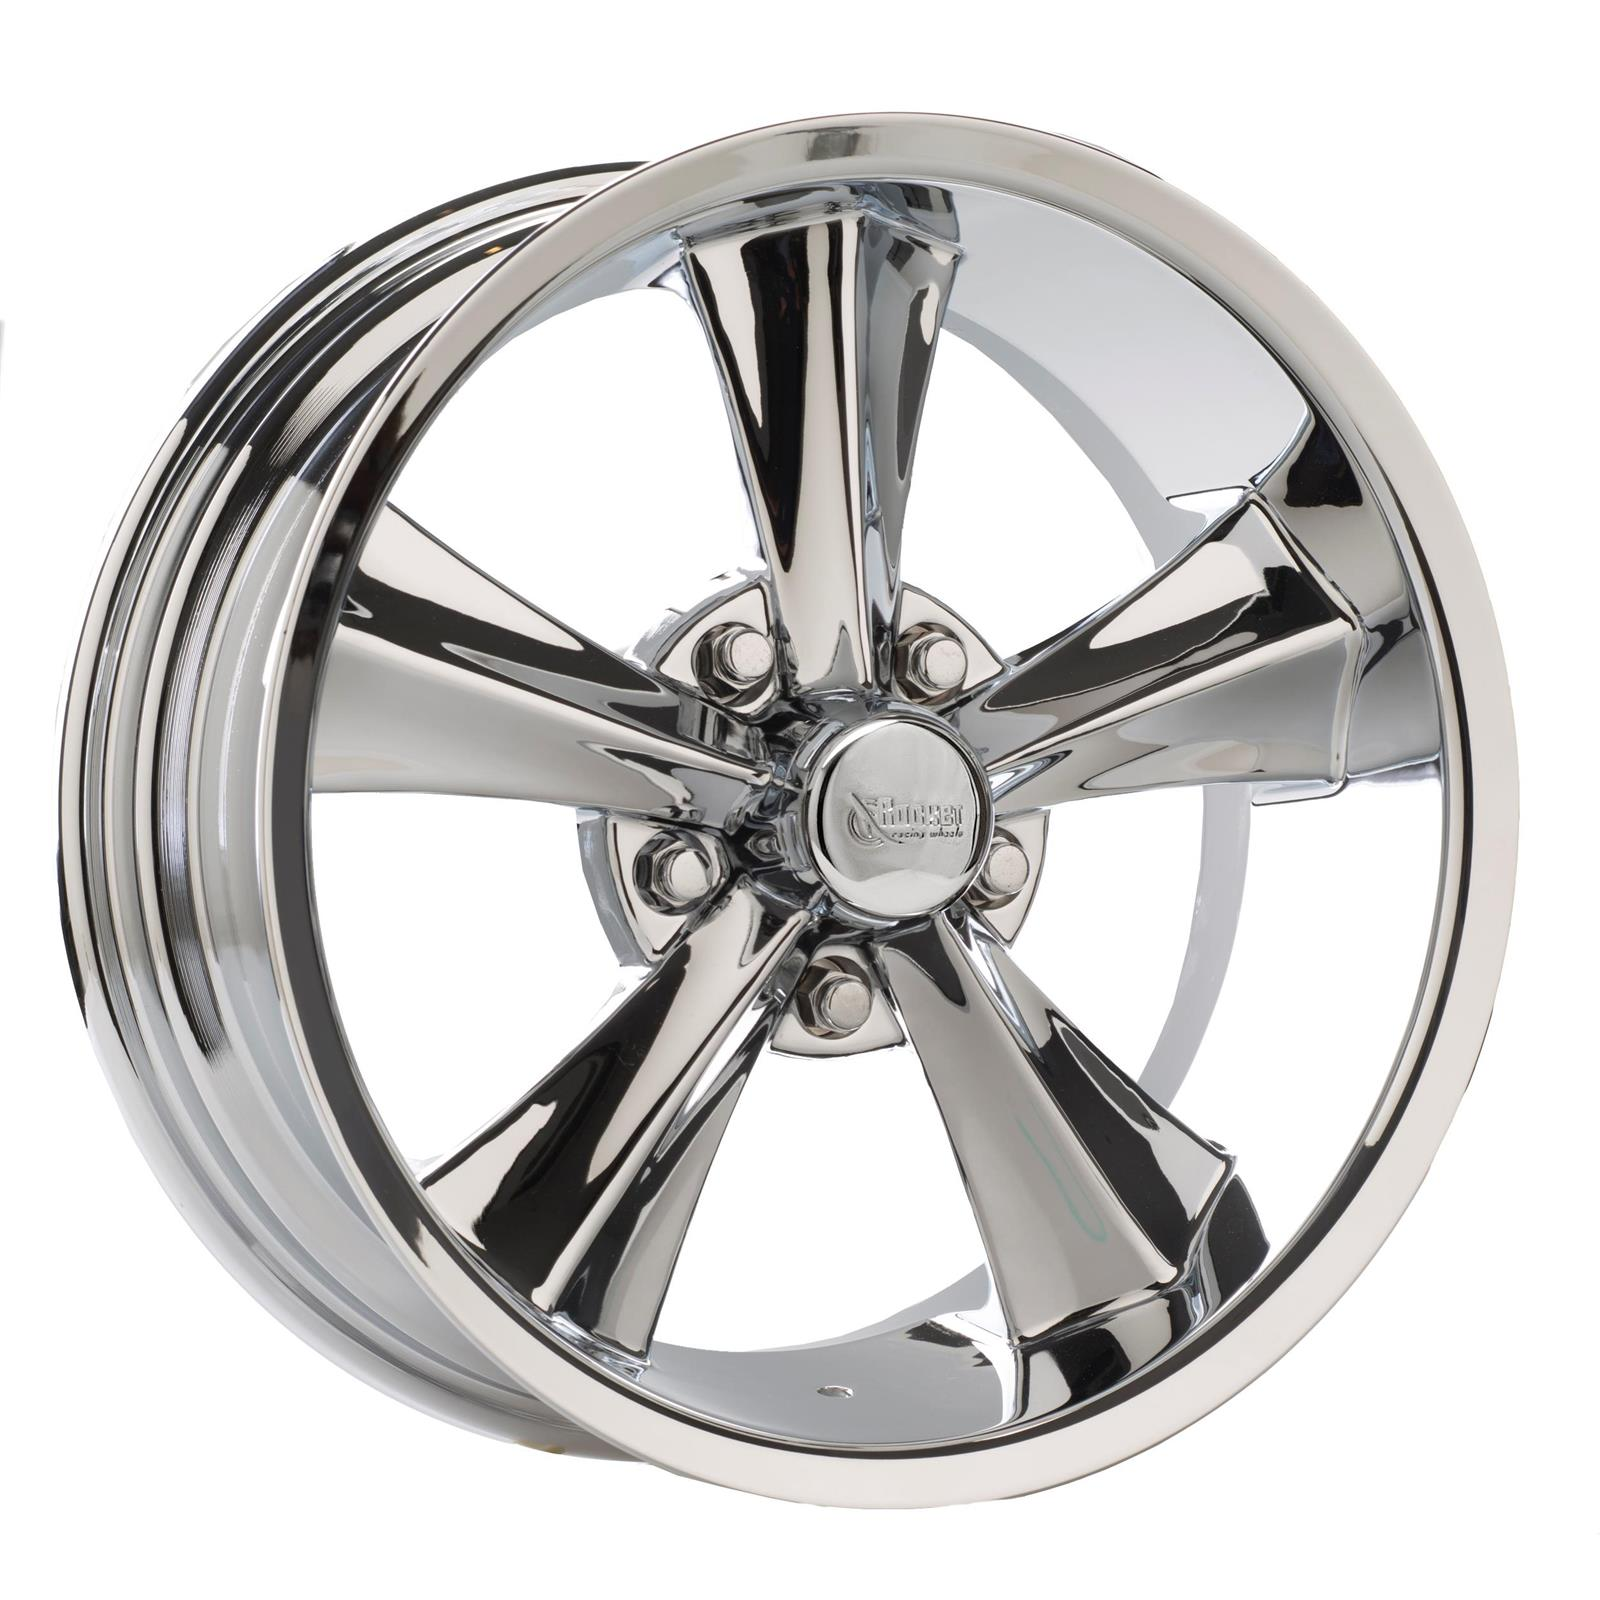 Rocket Racing R14-776142 Booster  17x7 Wheel, 5x4-3/4, 4-1/4 BS